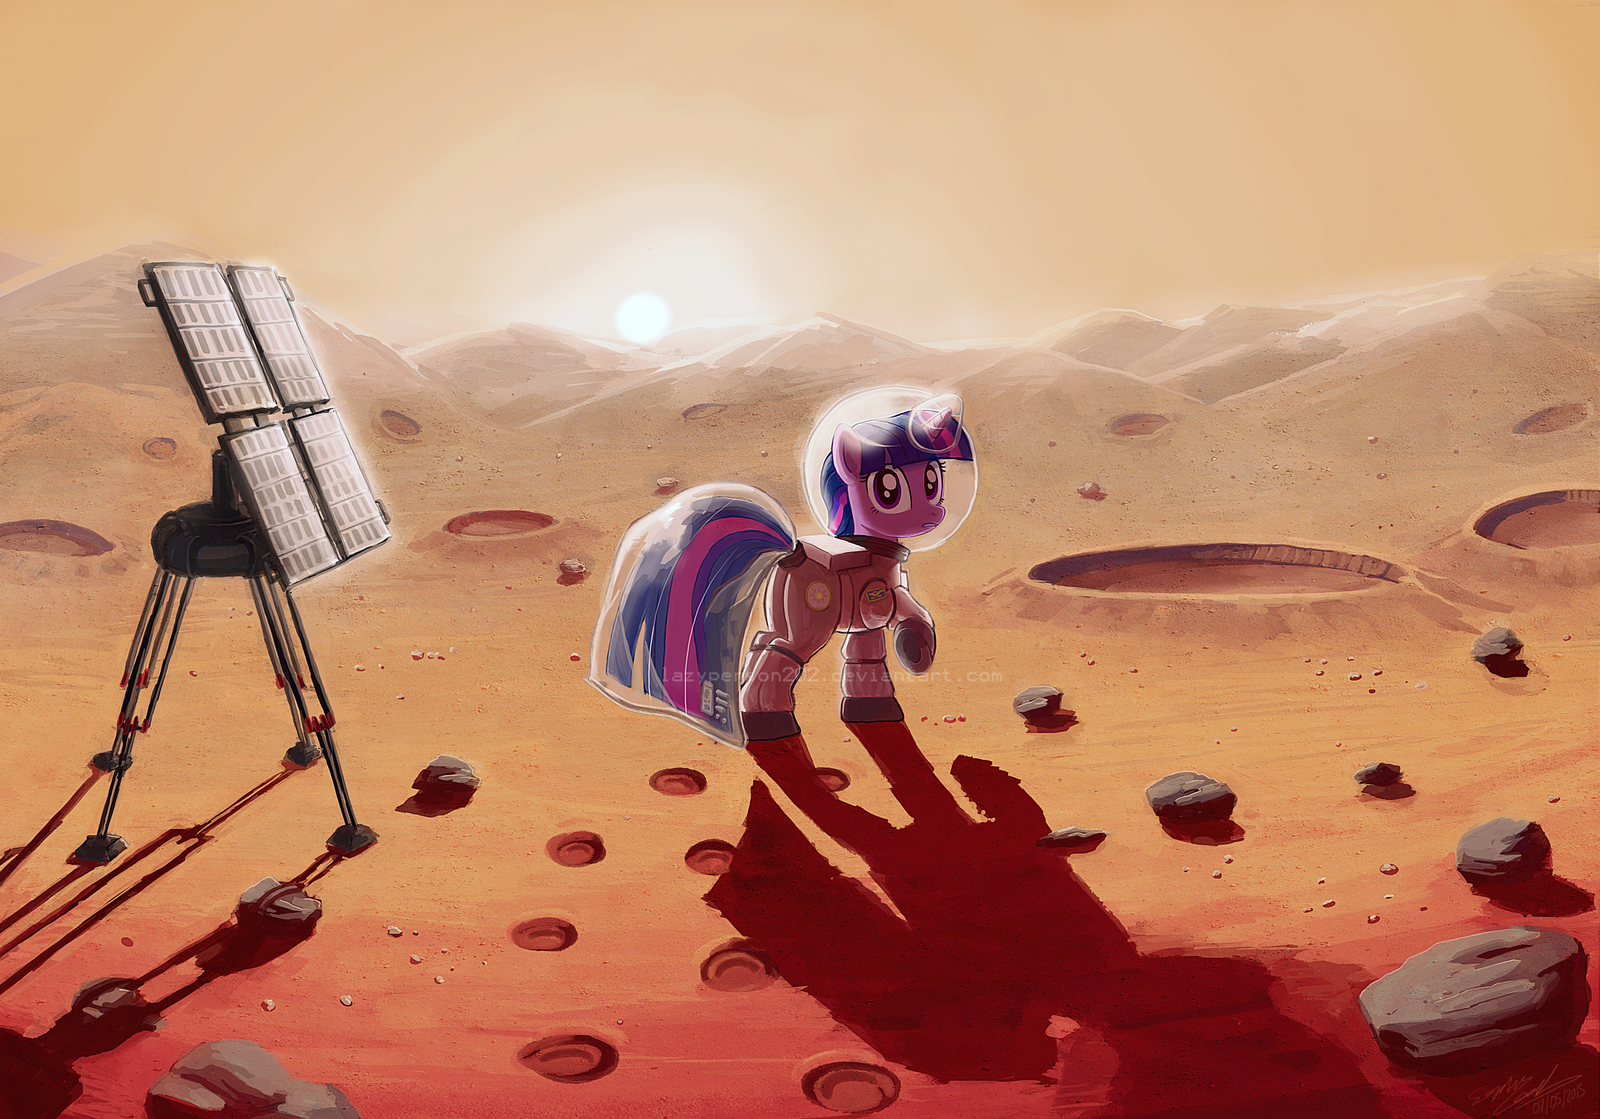 martian_twilight_by_lazyperson202-d8vyri8.png